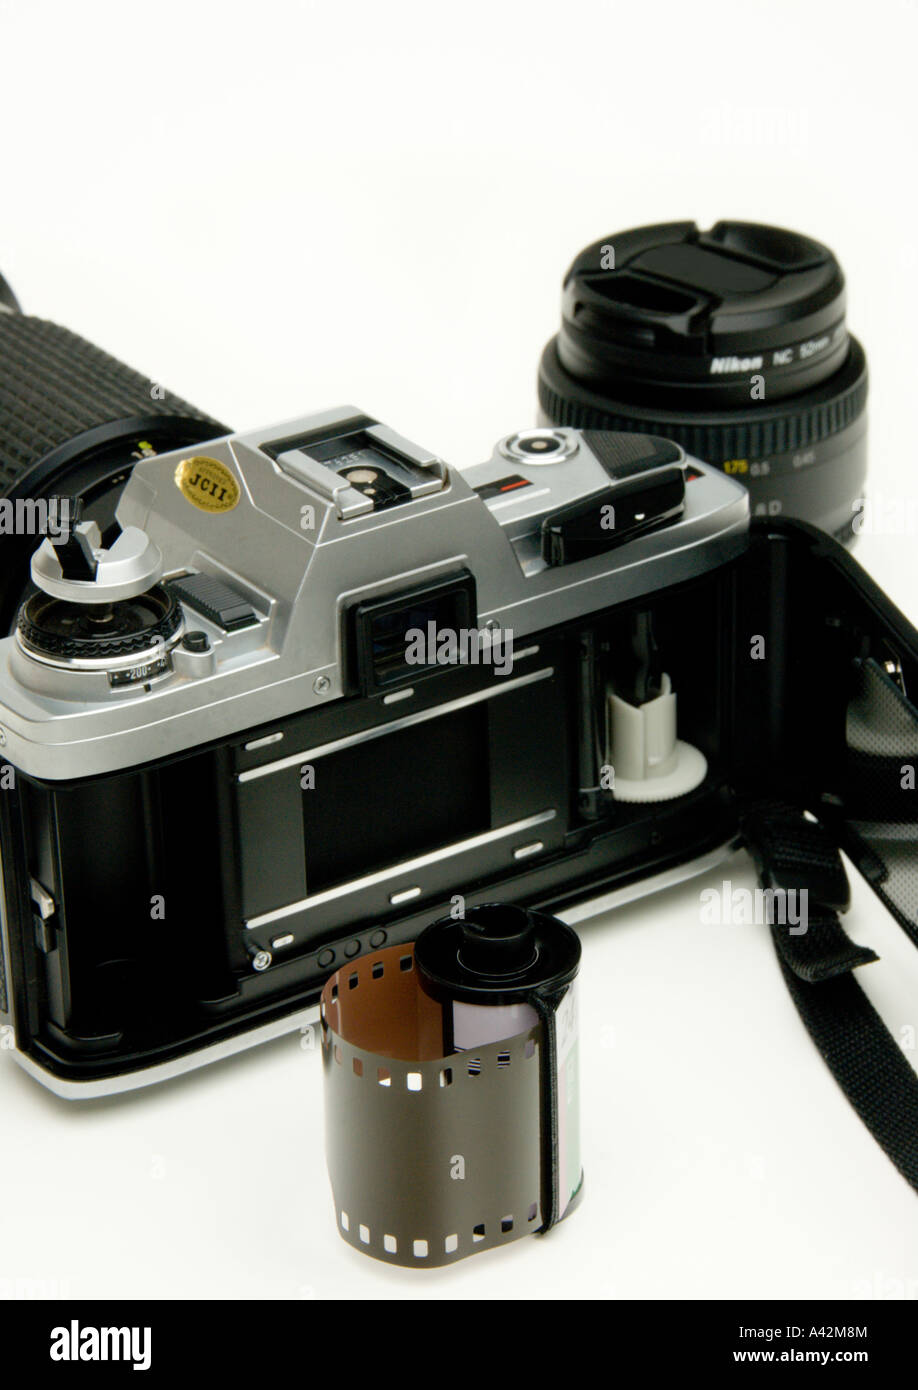 Old SLR film camera open with film. - Stock Image